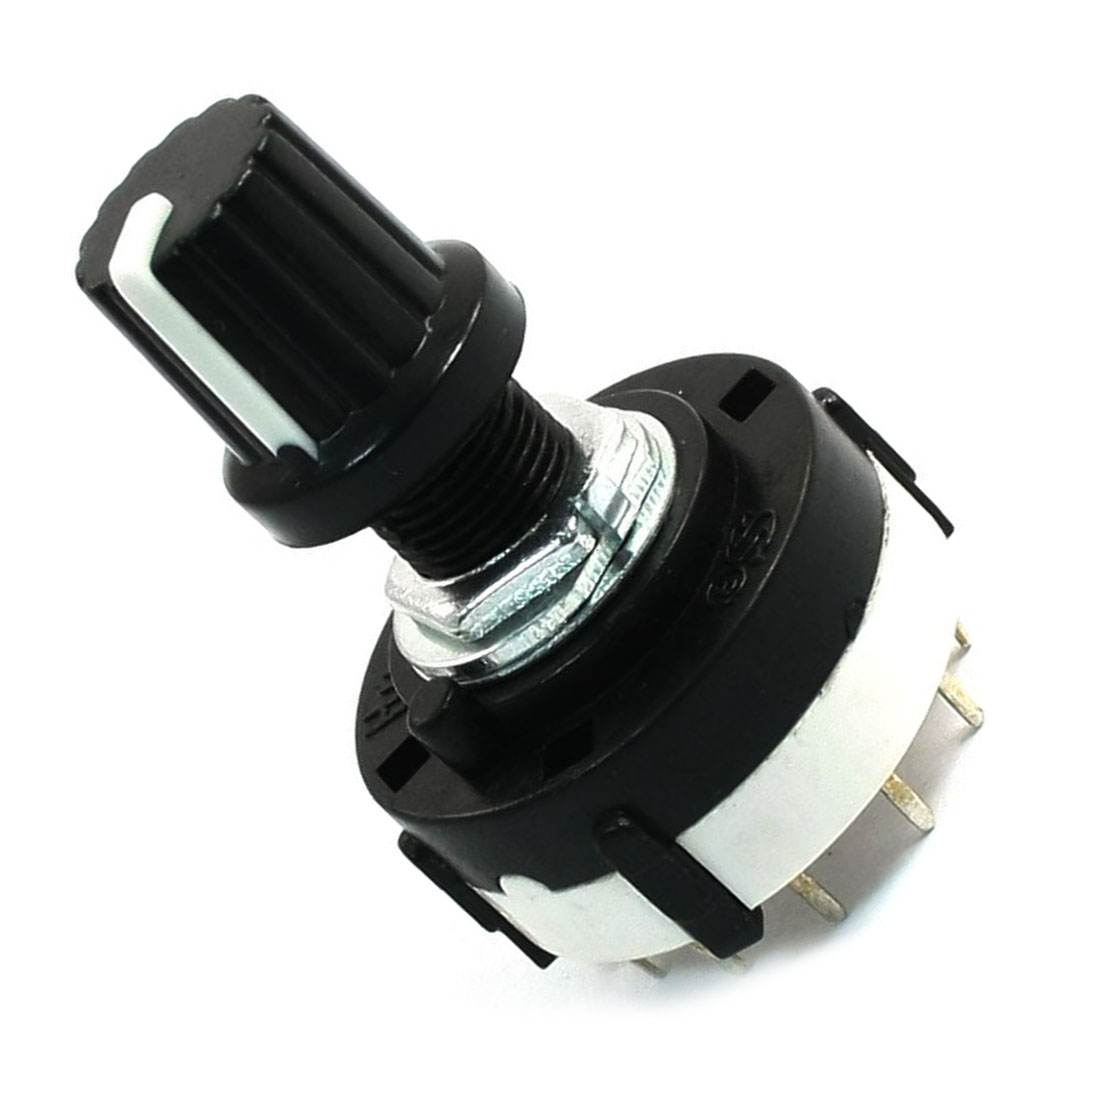 JFBL 2X Hot 4P3T Single Deck Rotary Switch Band Selector 4 Pole 3 Position with Knob Black 4pcs band channael rotary switch 2p3p 2 pole 3 position single deck